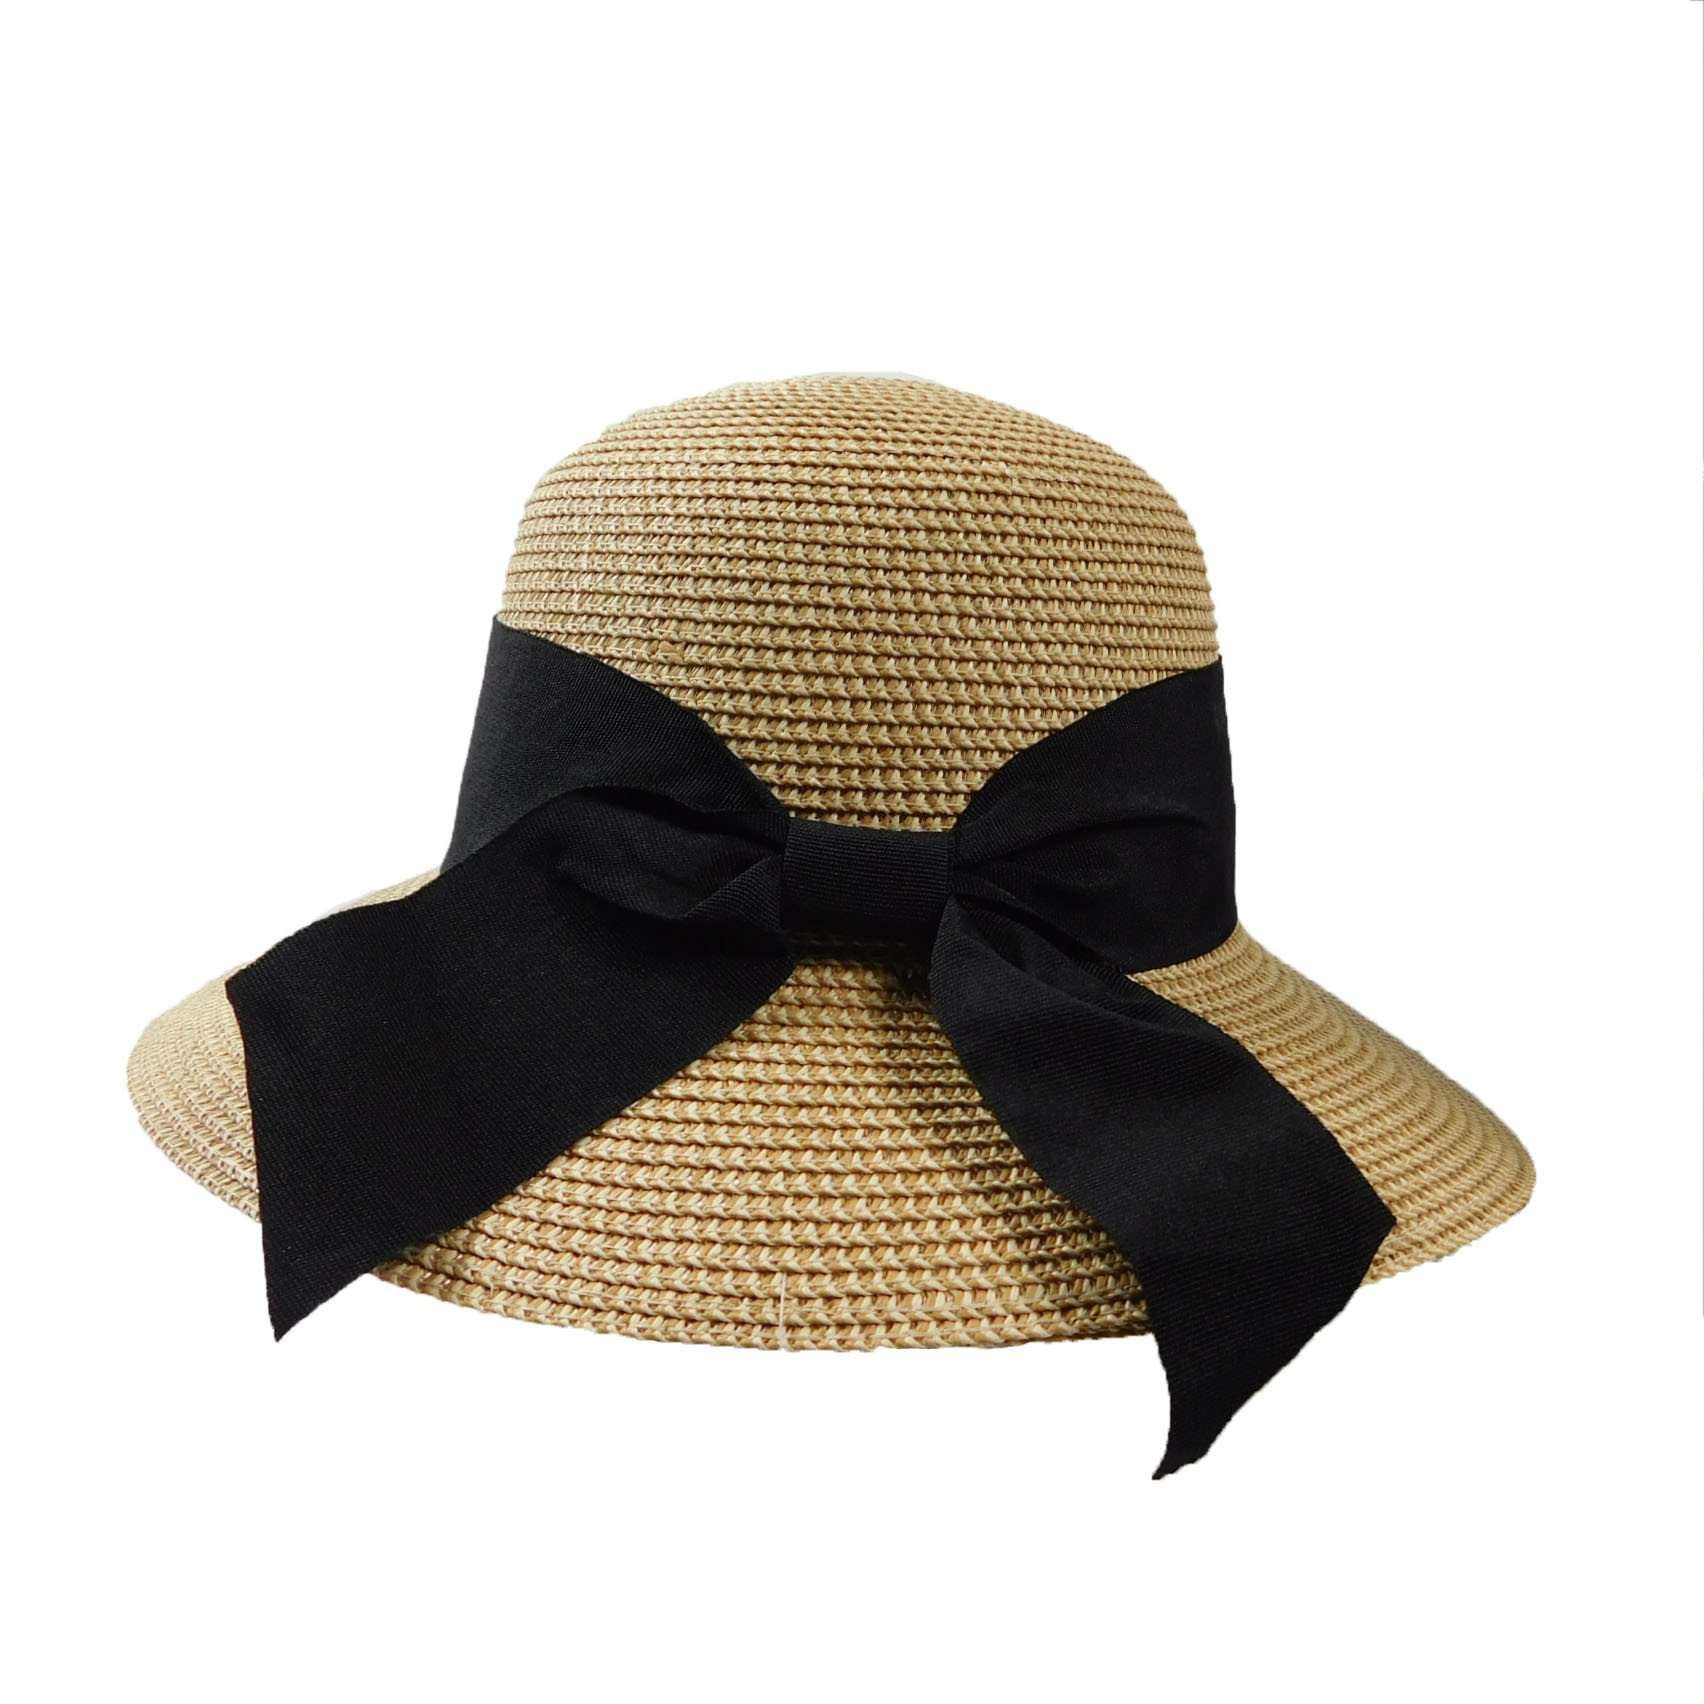 Big Brim Sun Hat with Wide Ribbon and Bow - SetarTrading Hats 086aa4b7618b